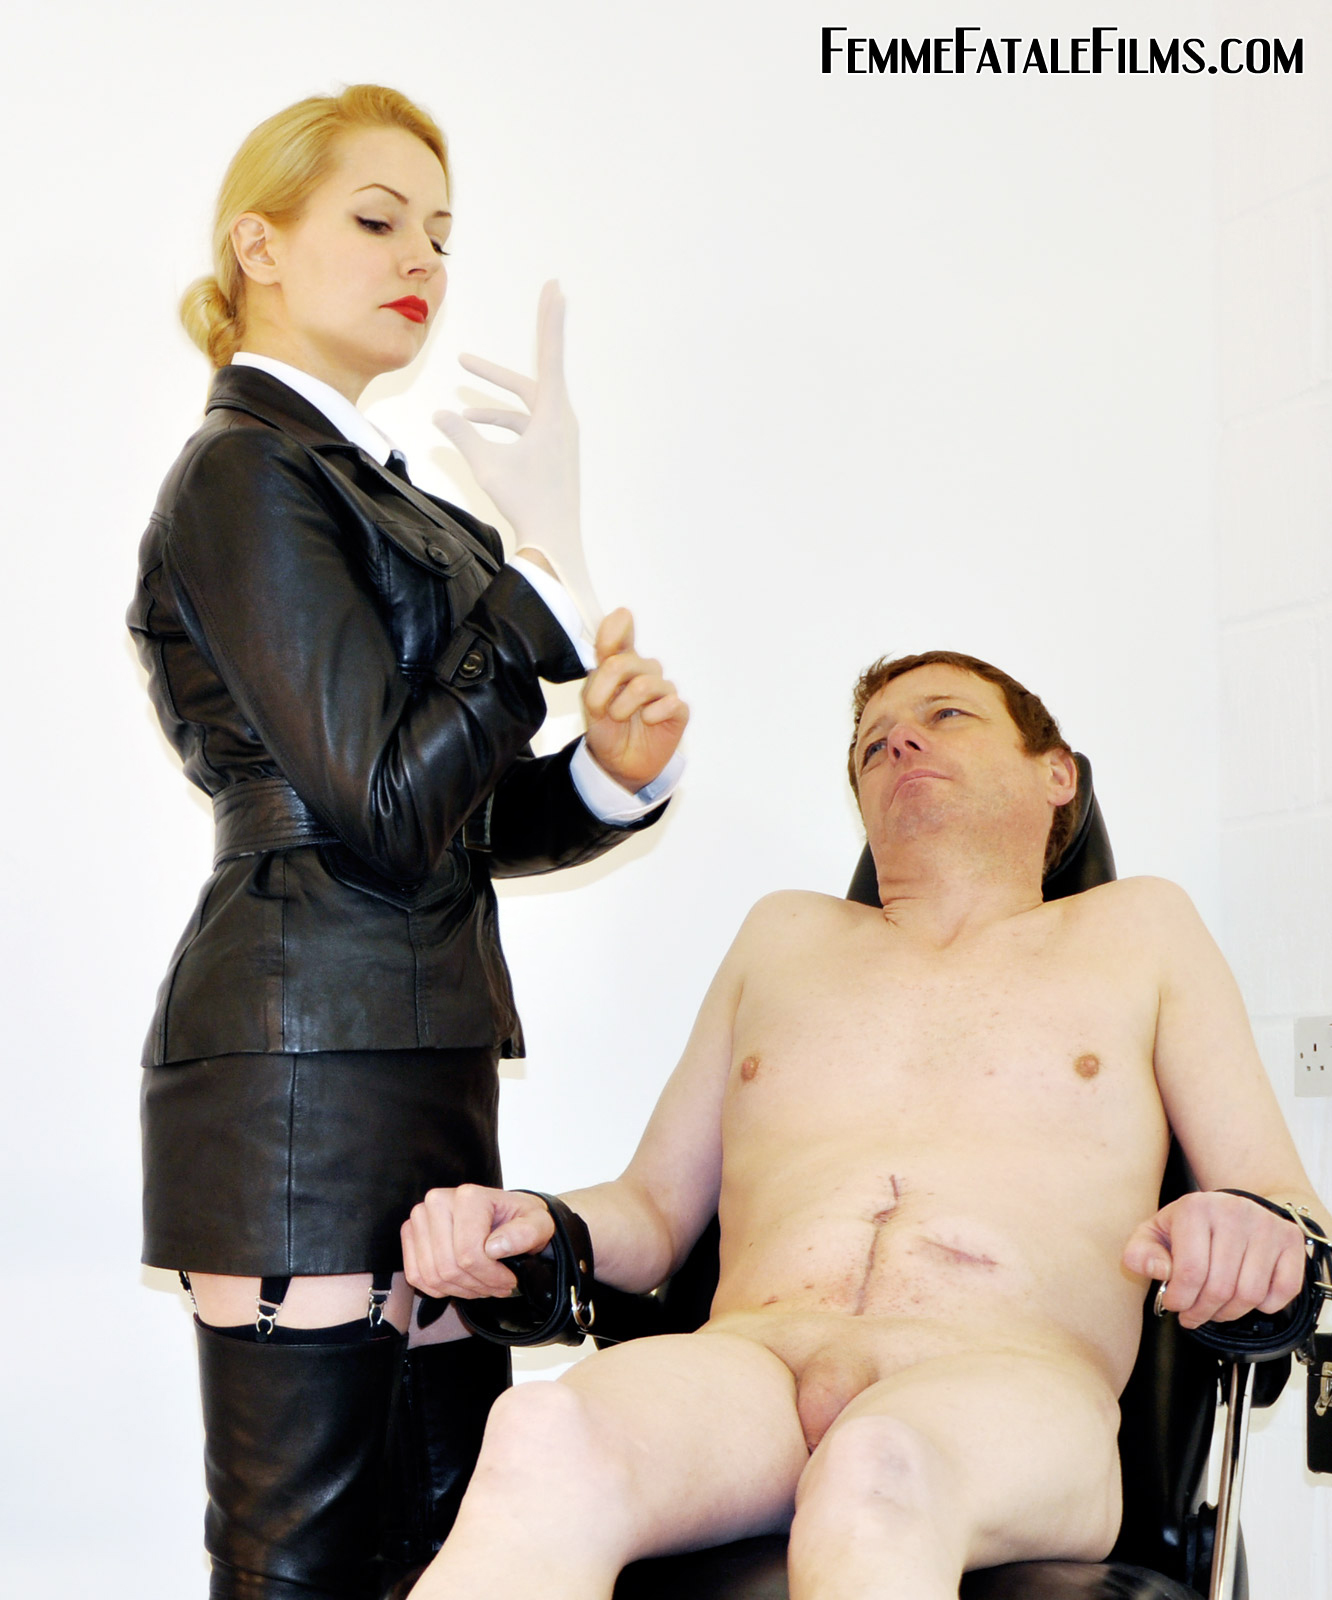 Cbt domme